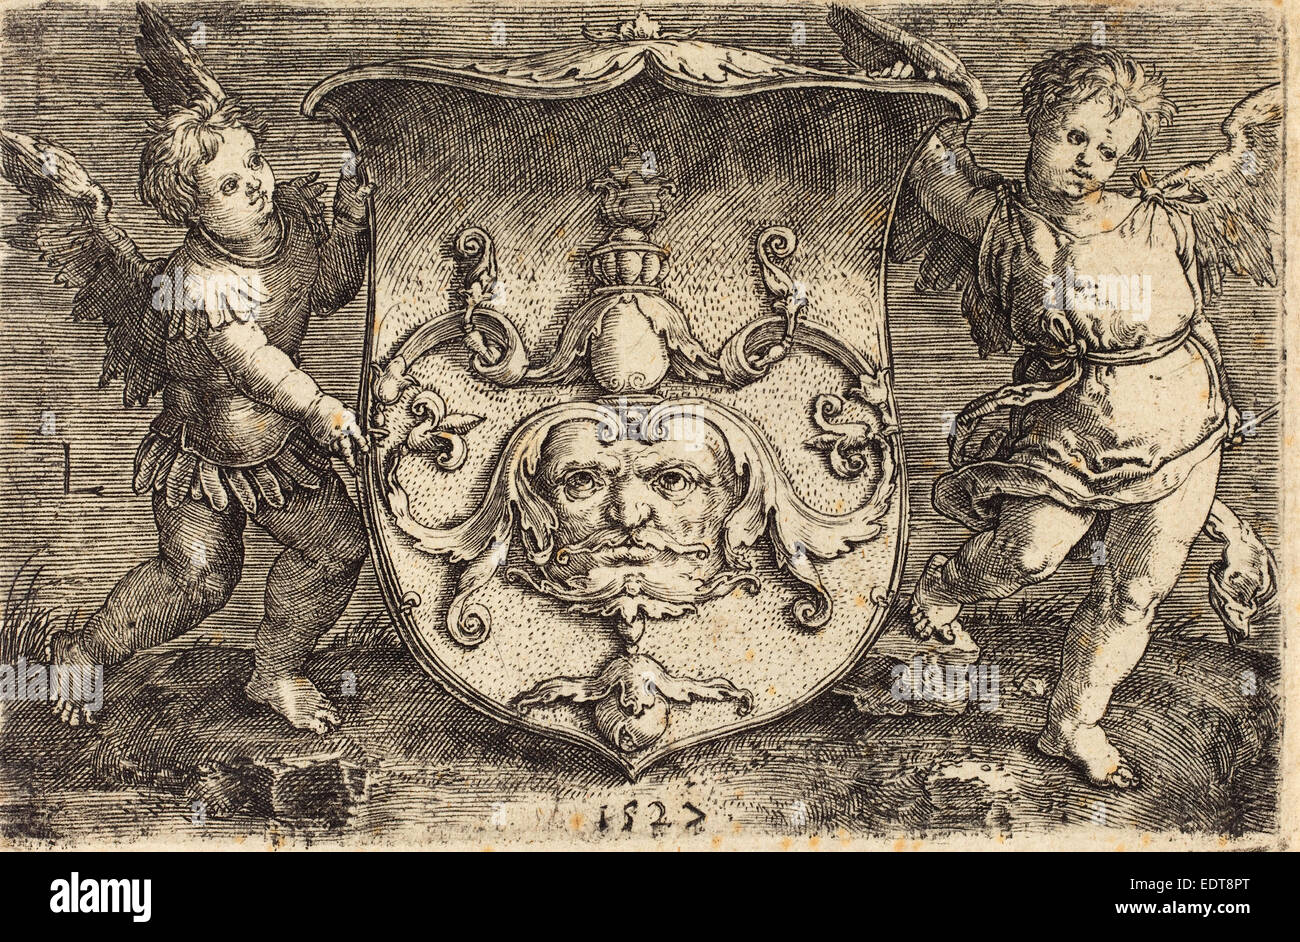 1488 - 1532), Shield with Mascaron,